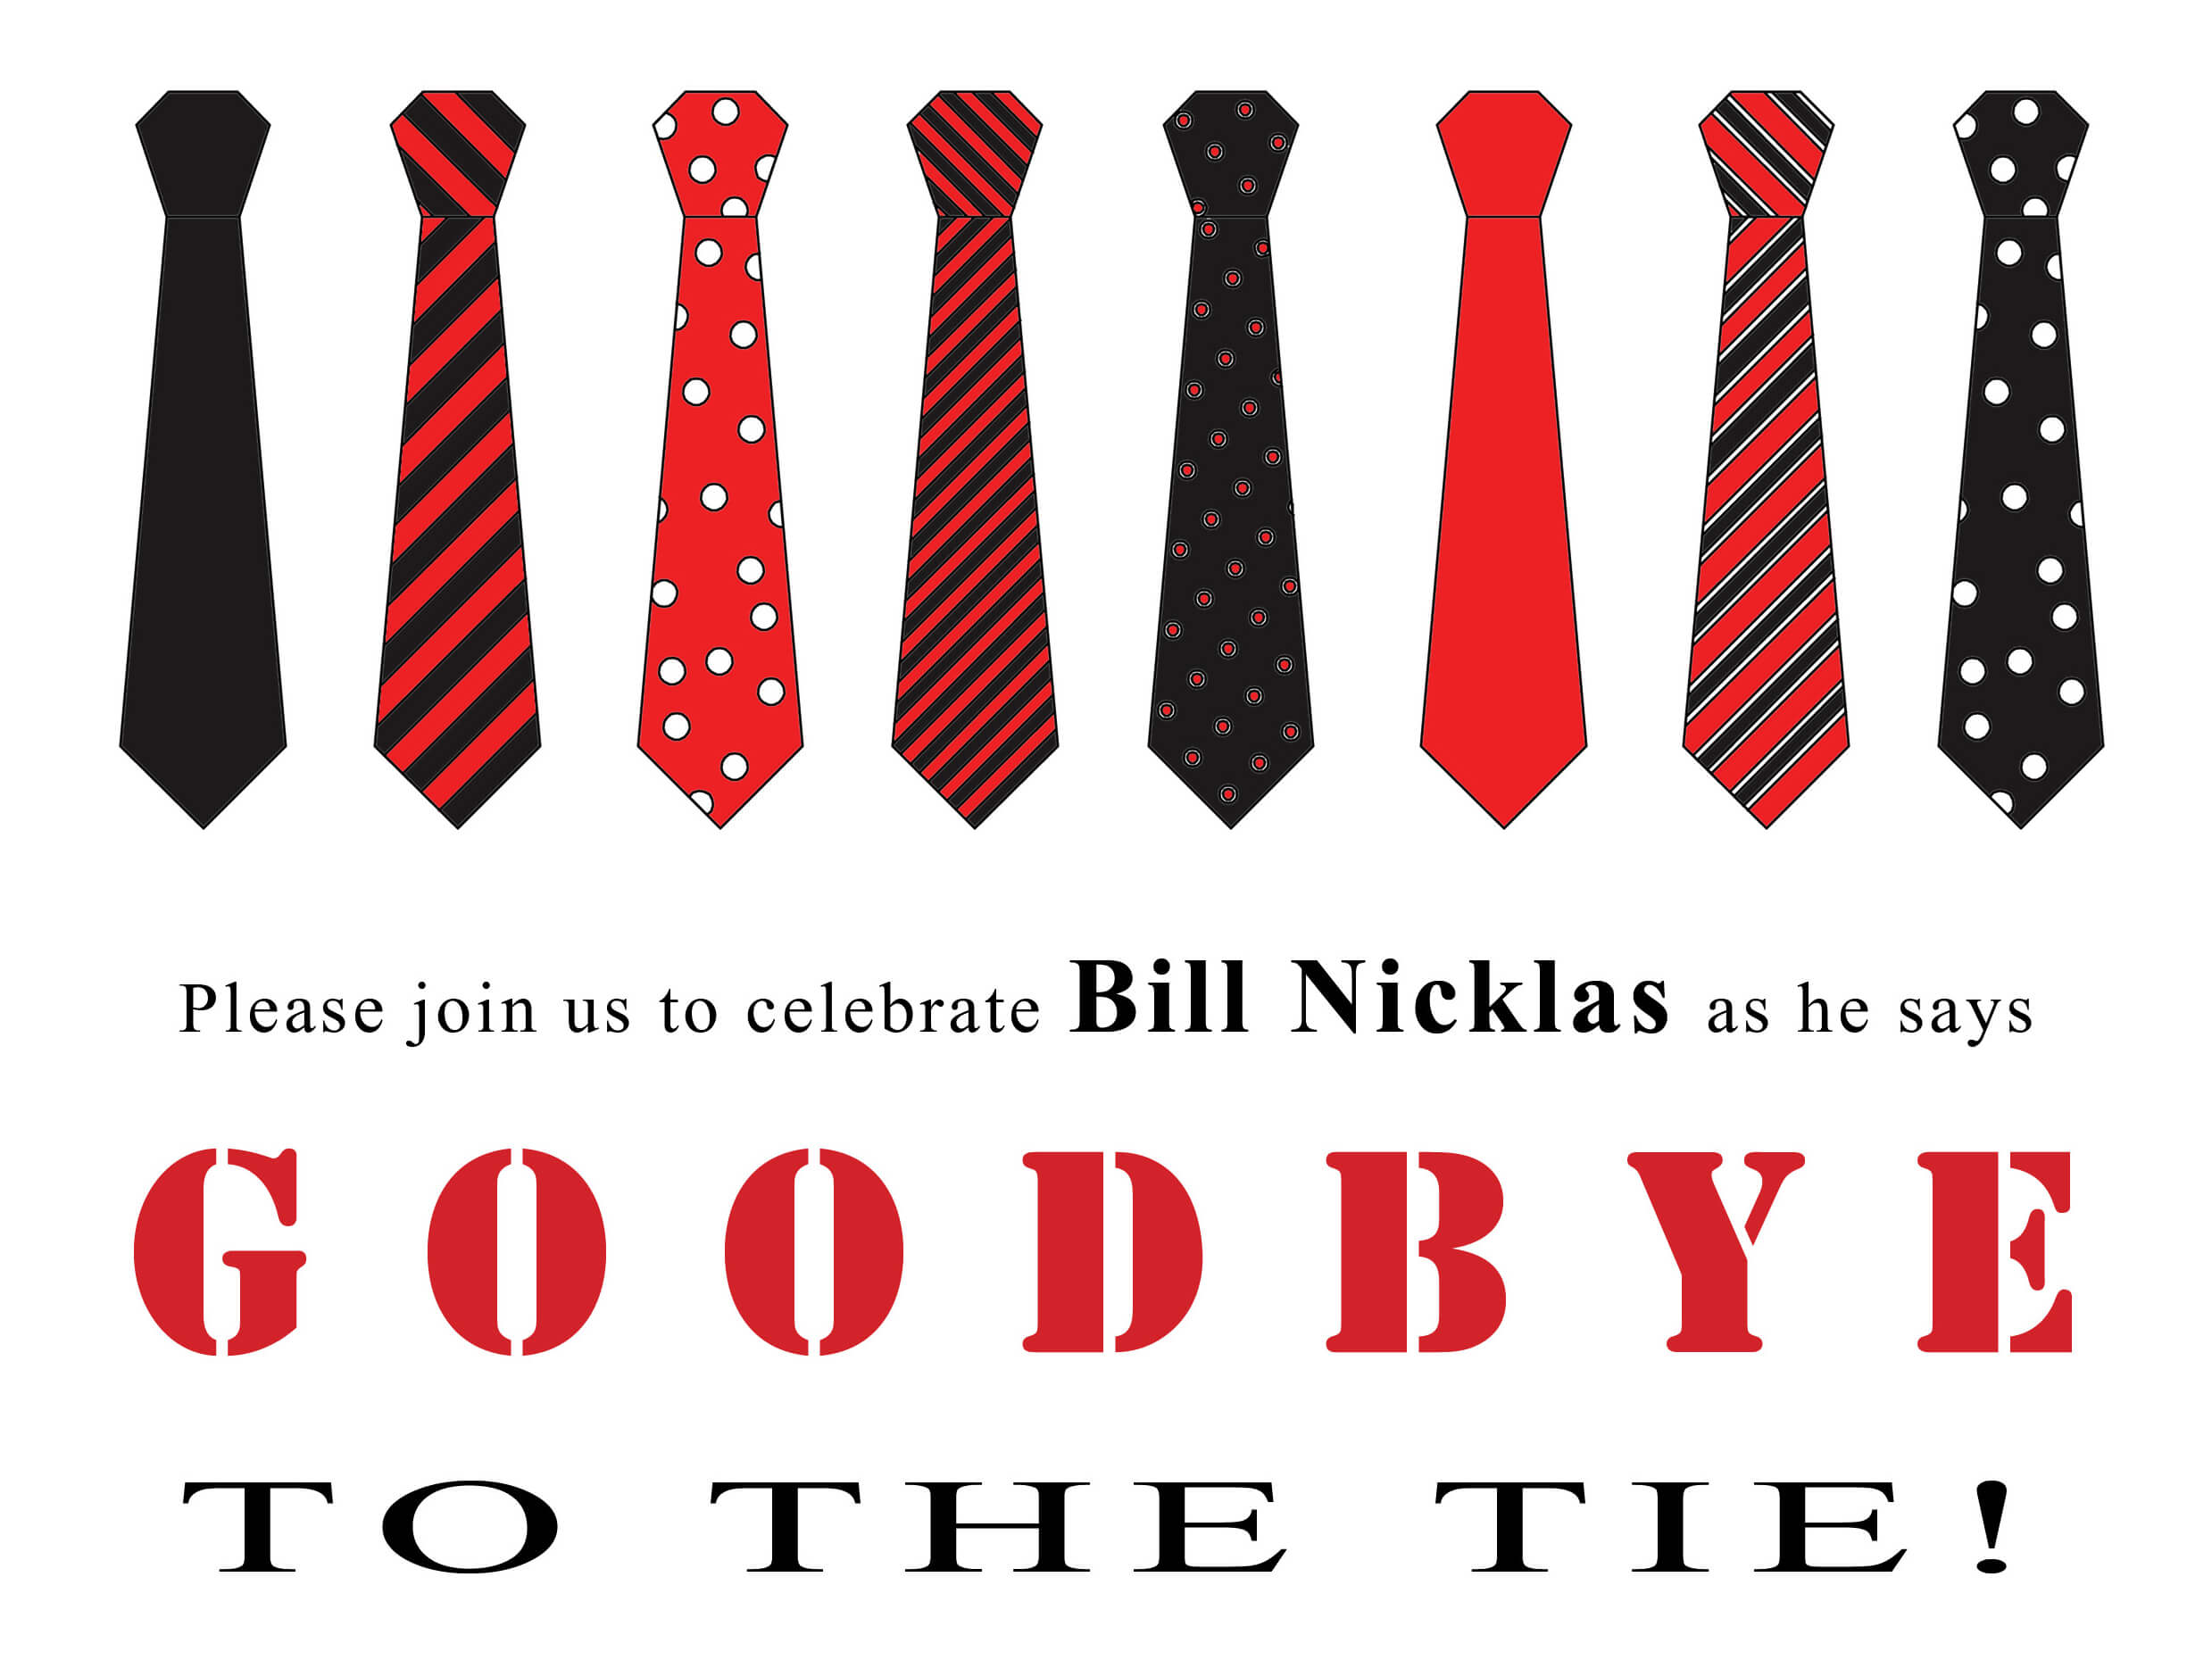 Goodbye to the tie